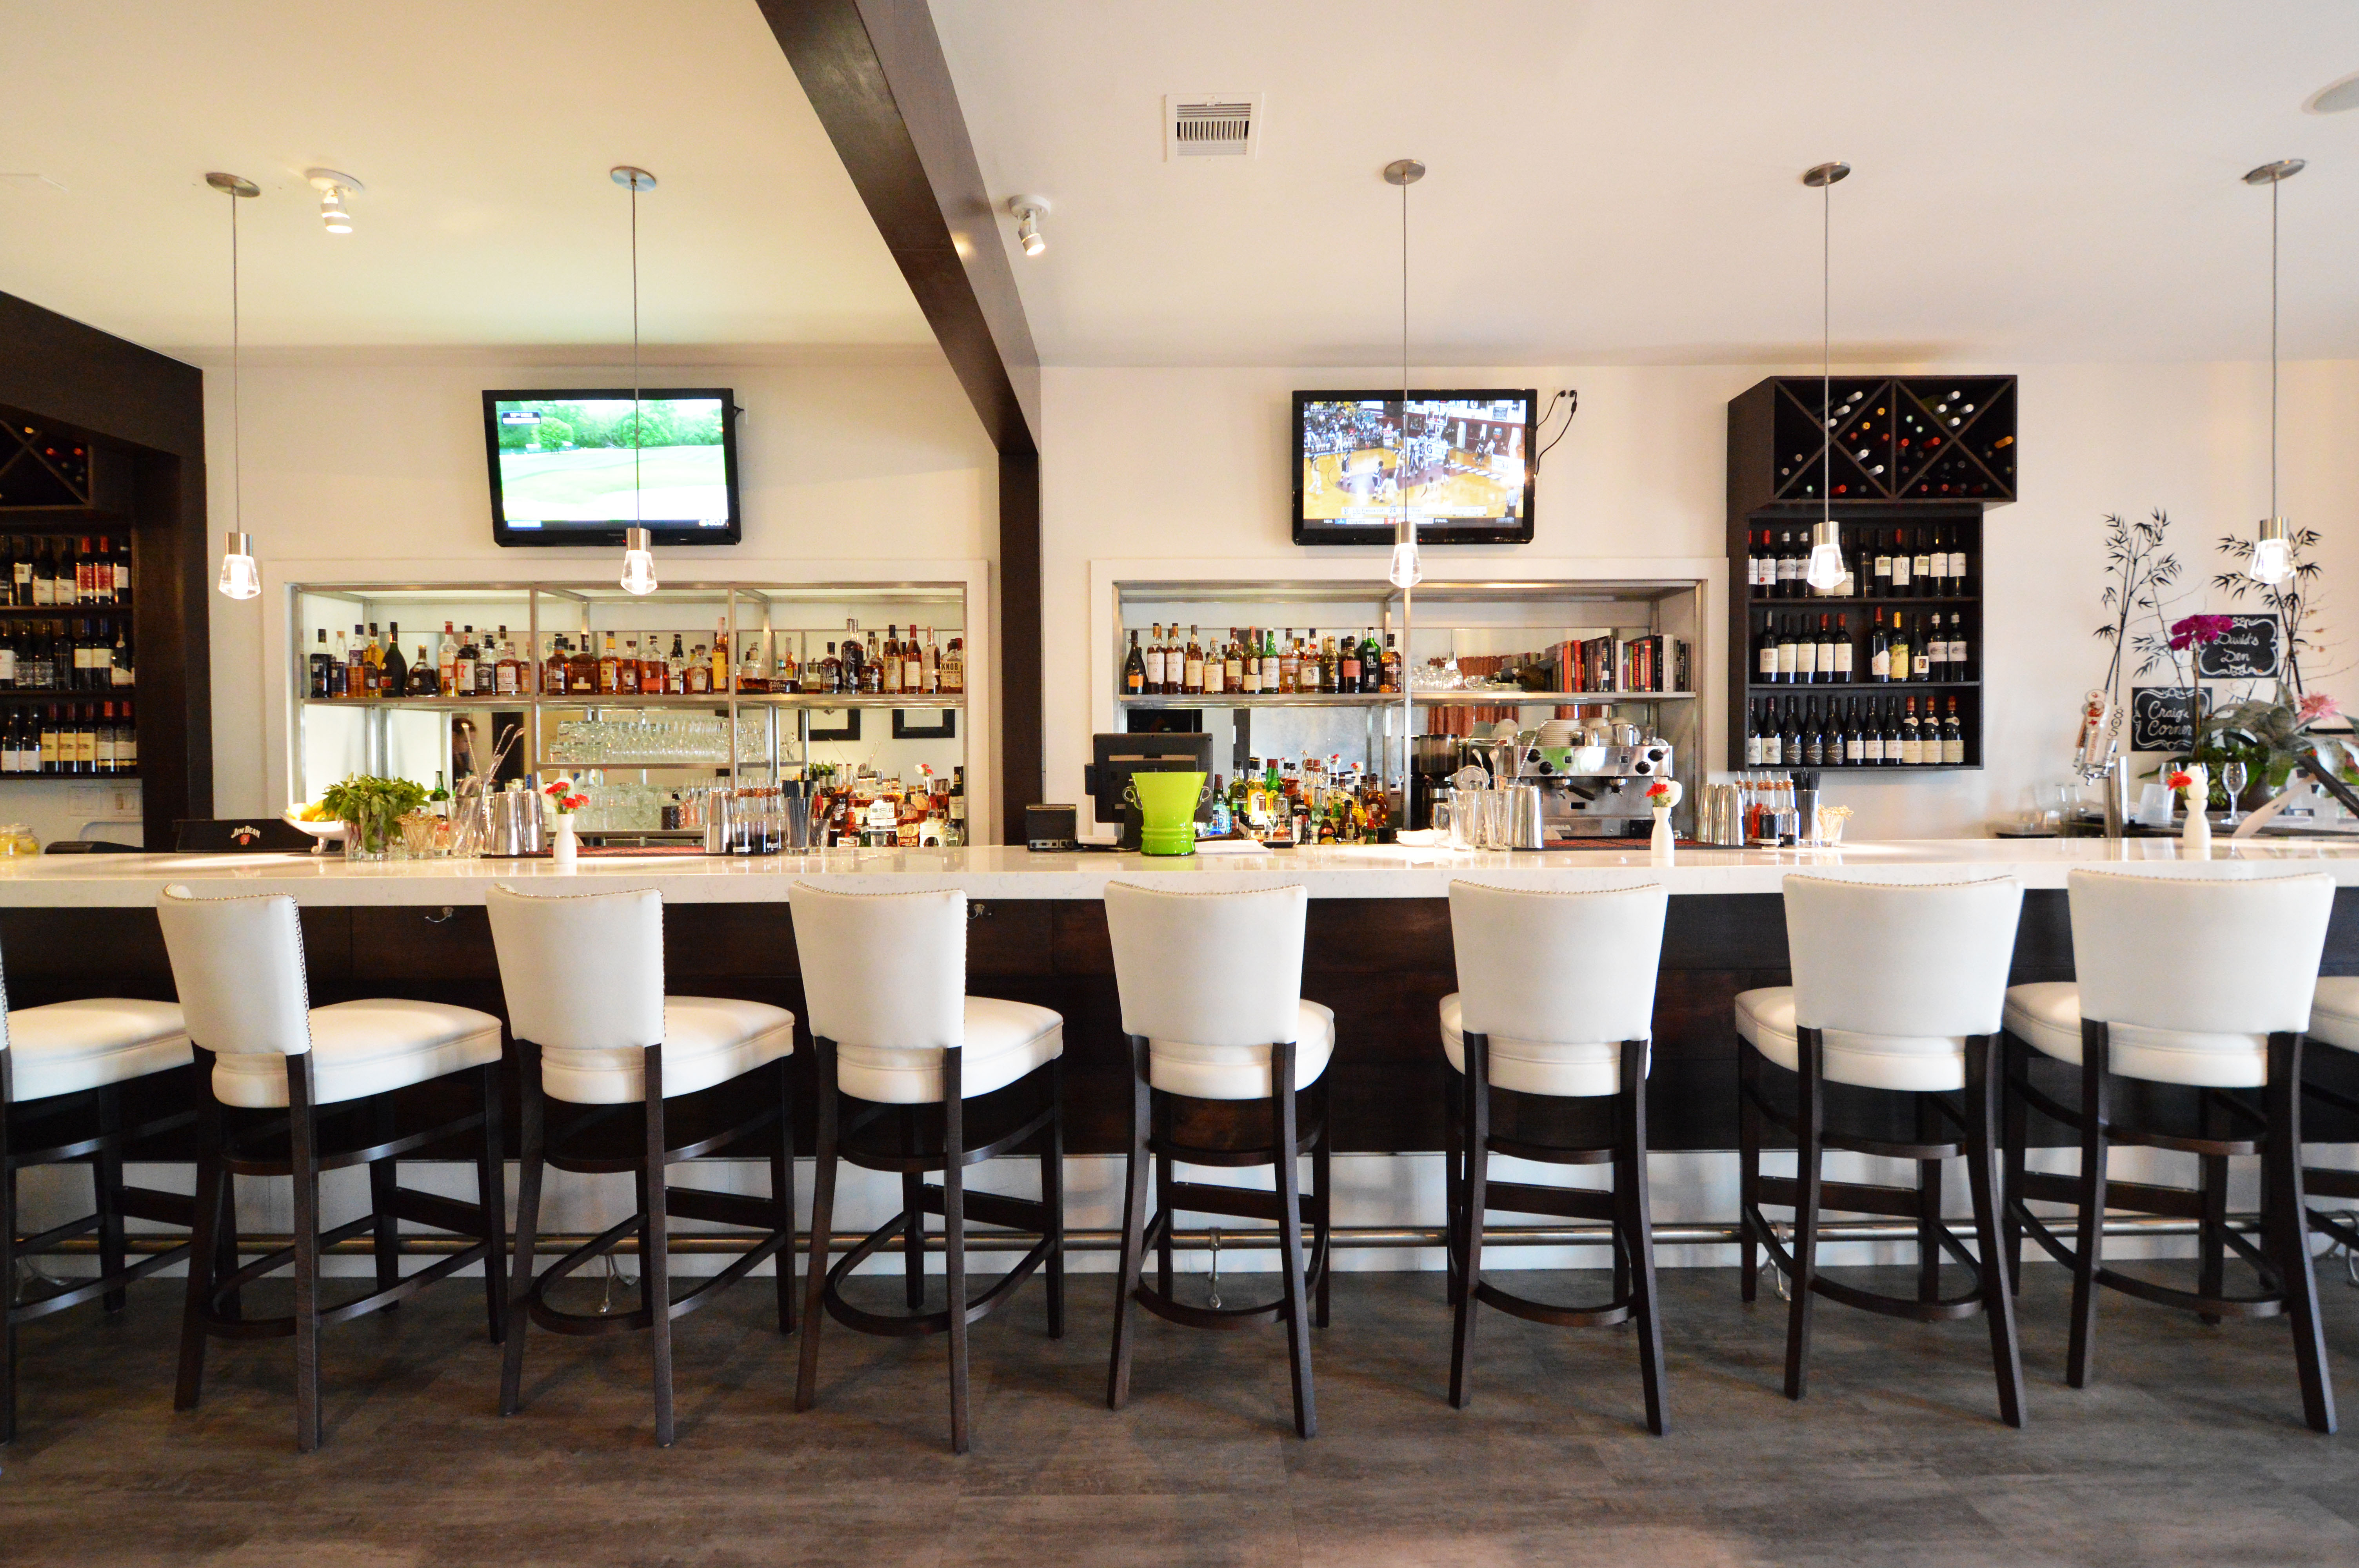 Belly up to the bar and let mixologist Mary Li dazzle you.